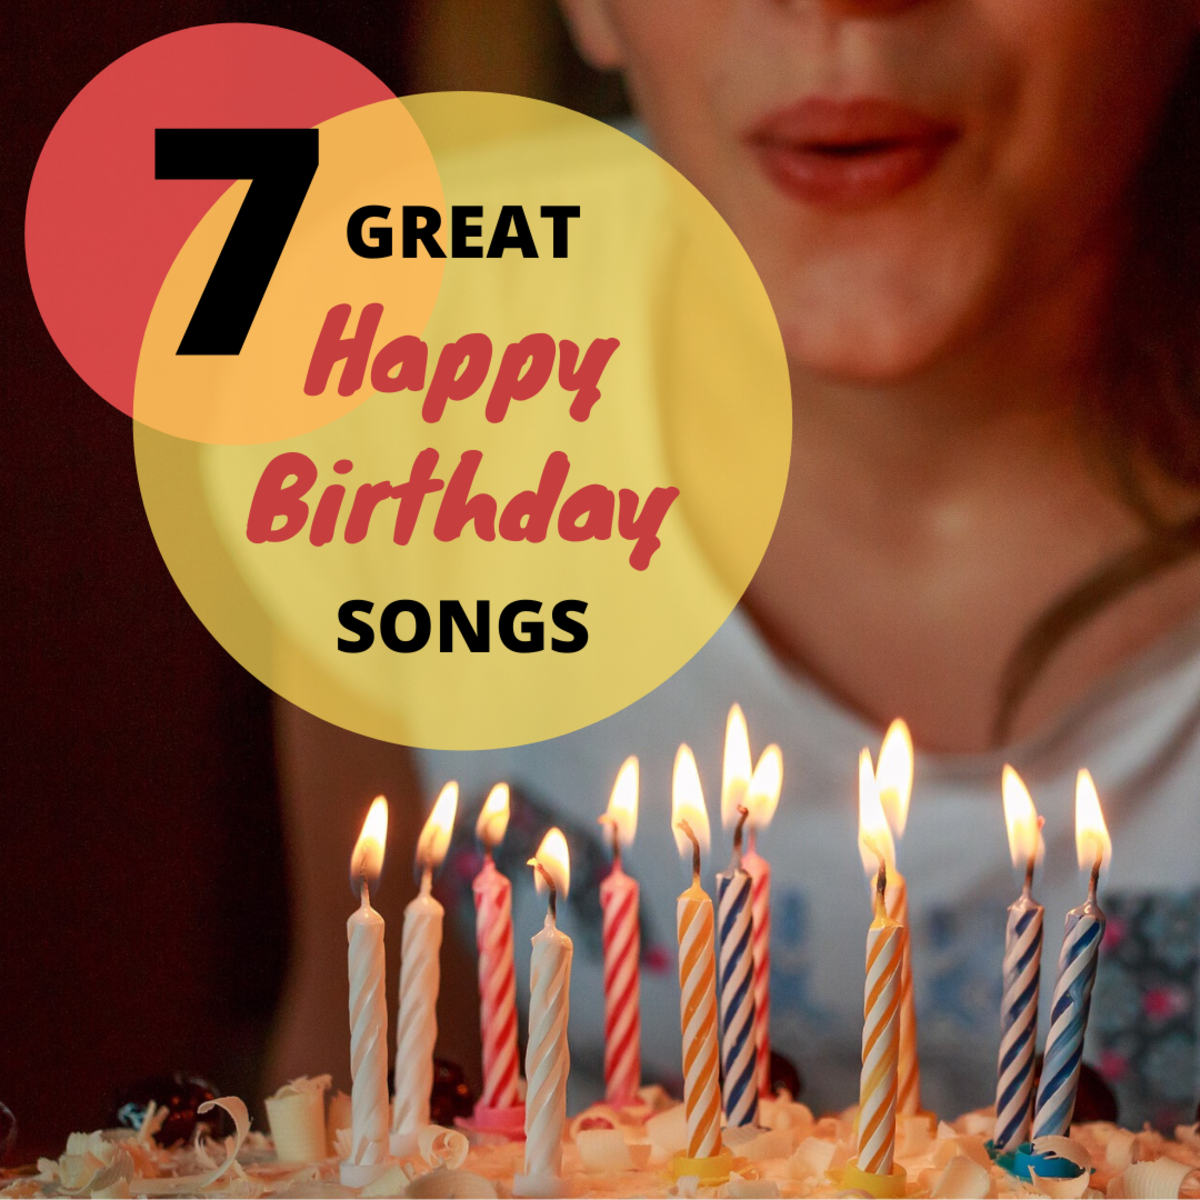 7 of the Best Happy Birthday Songs (Traditional and Funny)